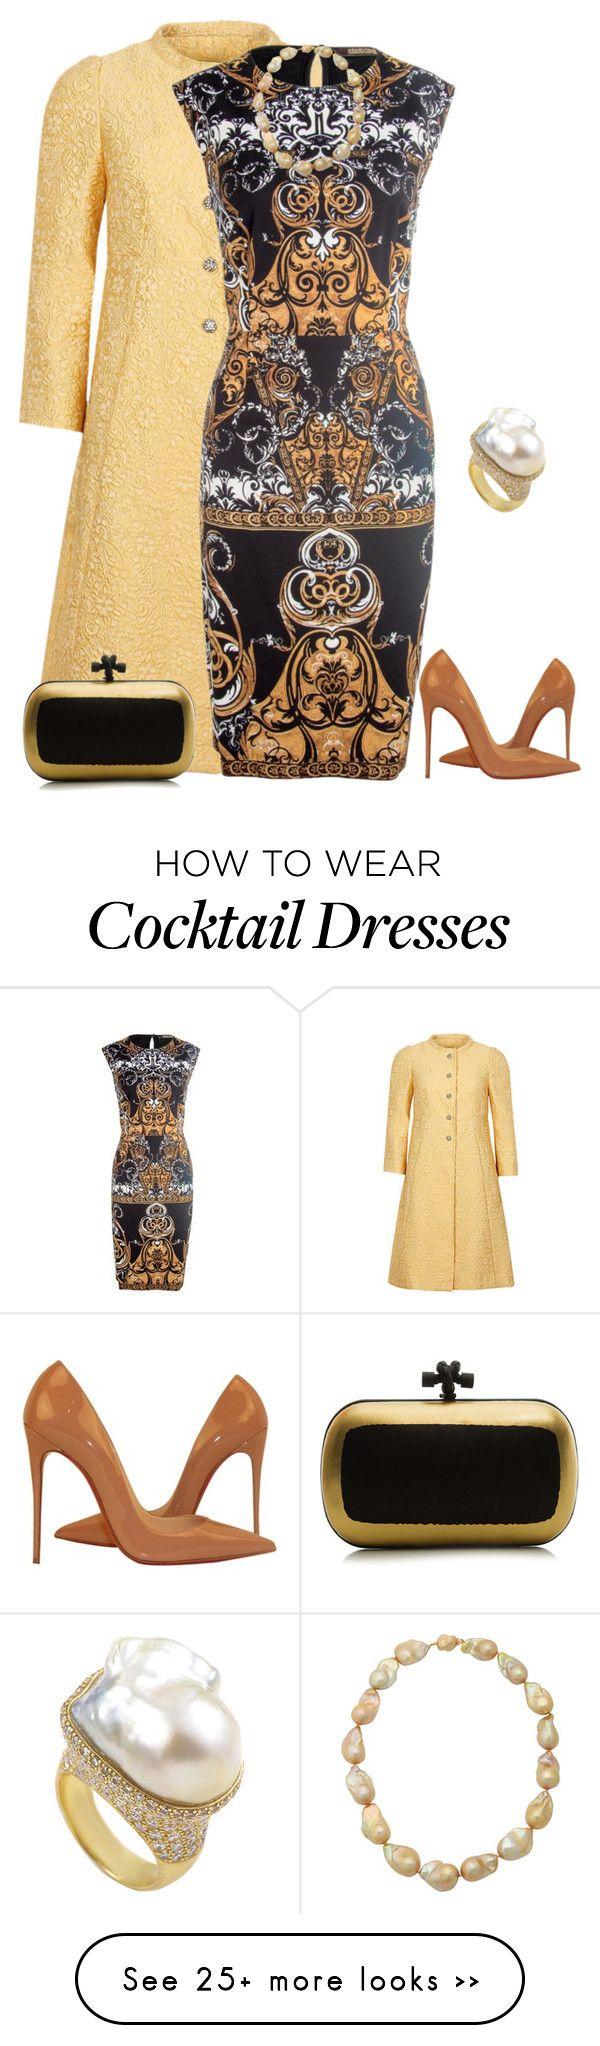 """outfit 2340"" by natalyag on Polyvore featuring Dolce&Gabbana, Jose Hess, Christian Louboutin and Bottega Veneta"